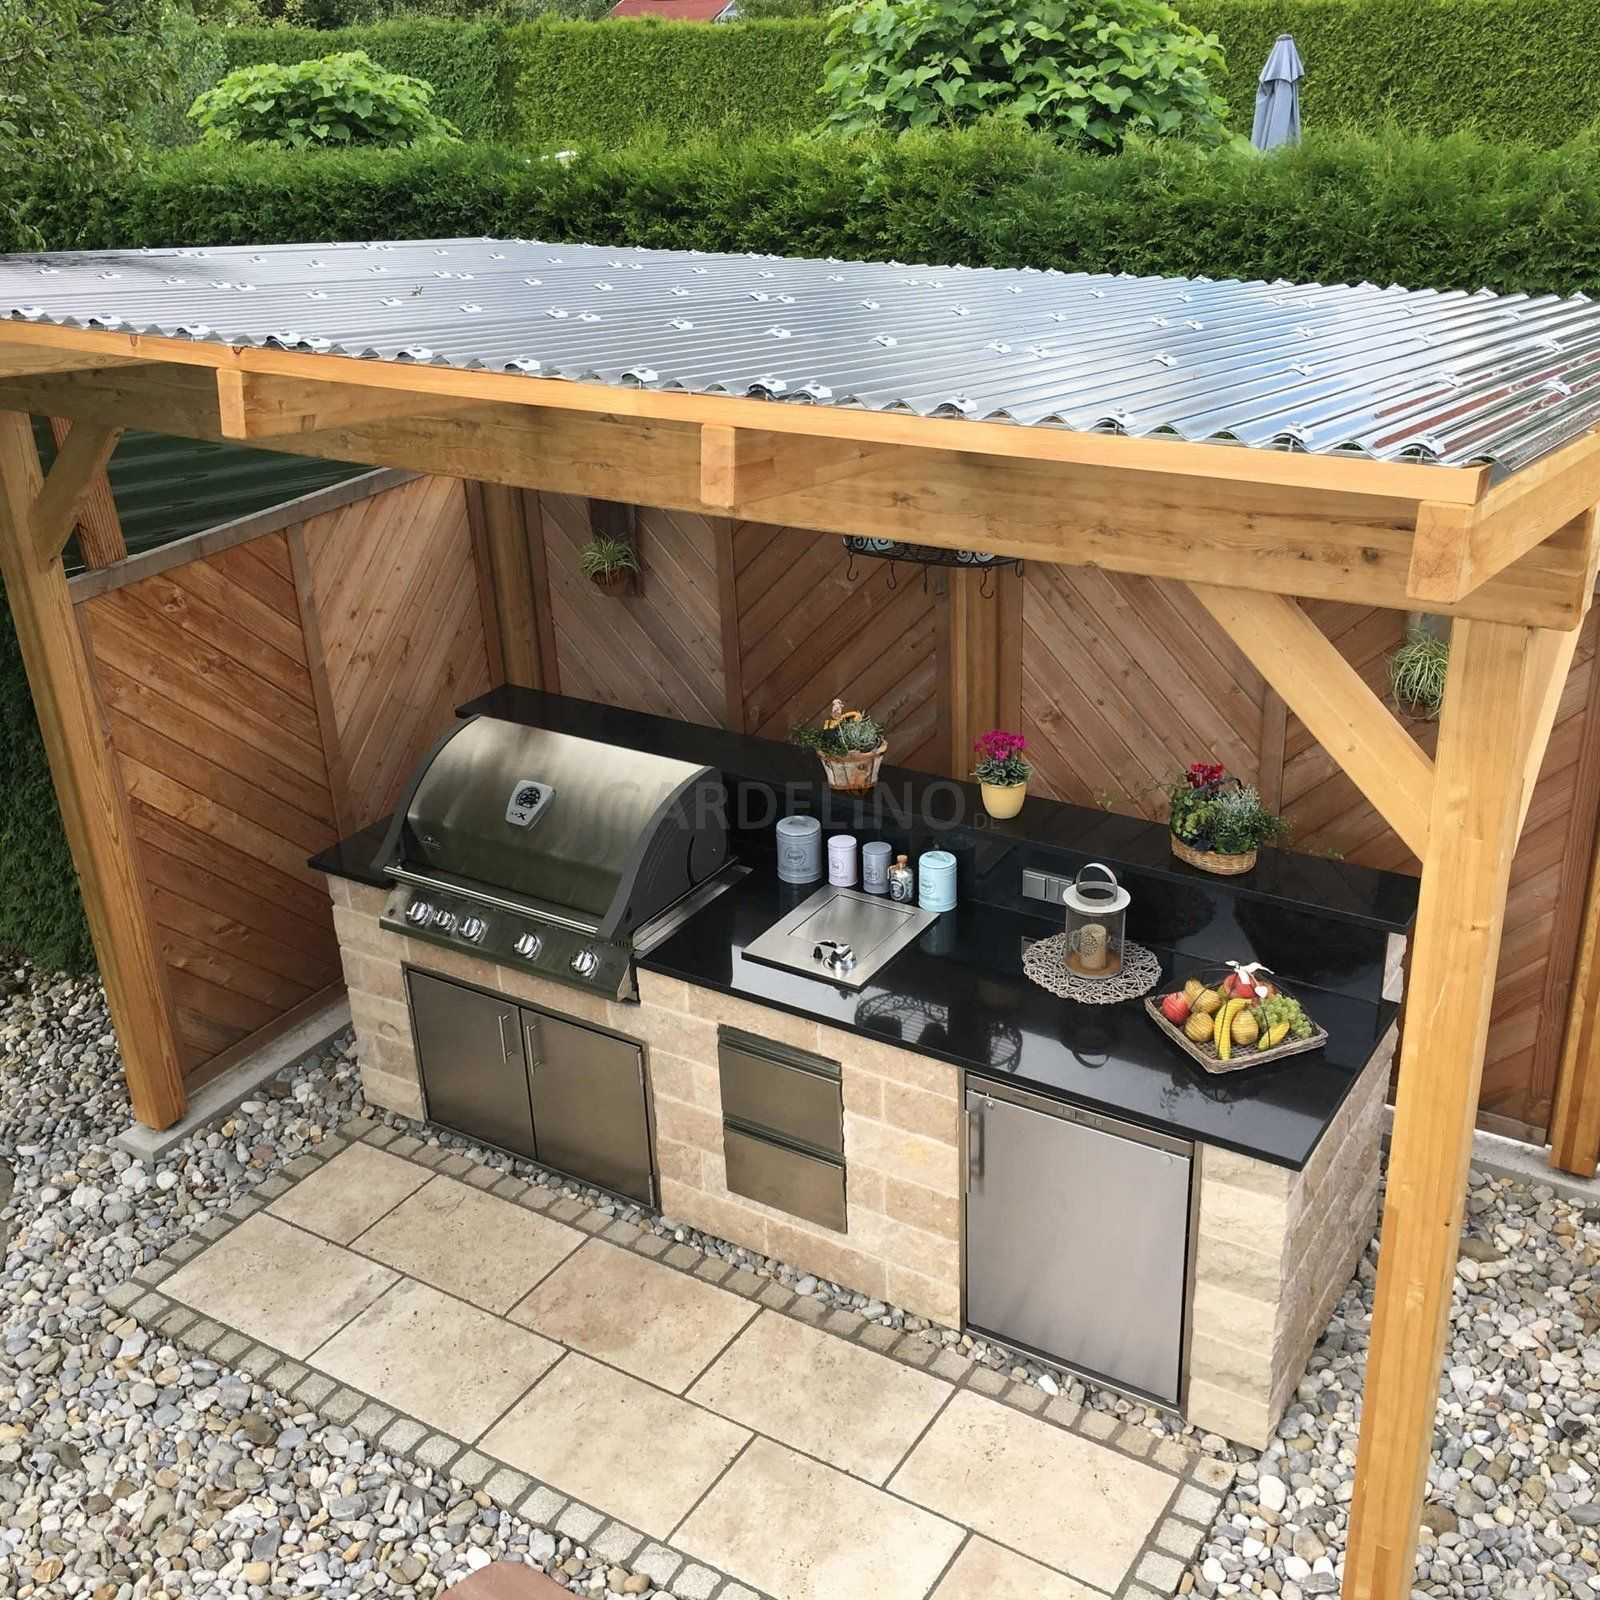 Patio Design Ideas In 2020 Outdoor Kitchen Decor Backyard Kitchen Outdoor Kitchen